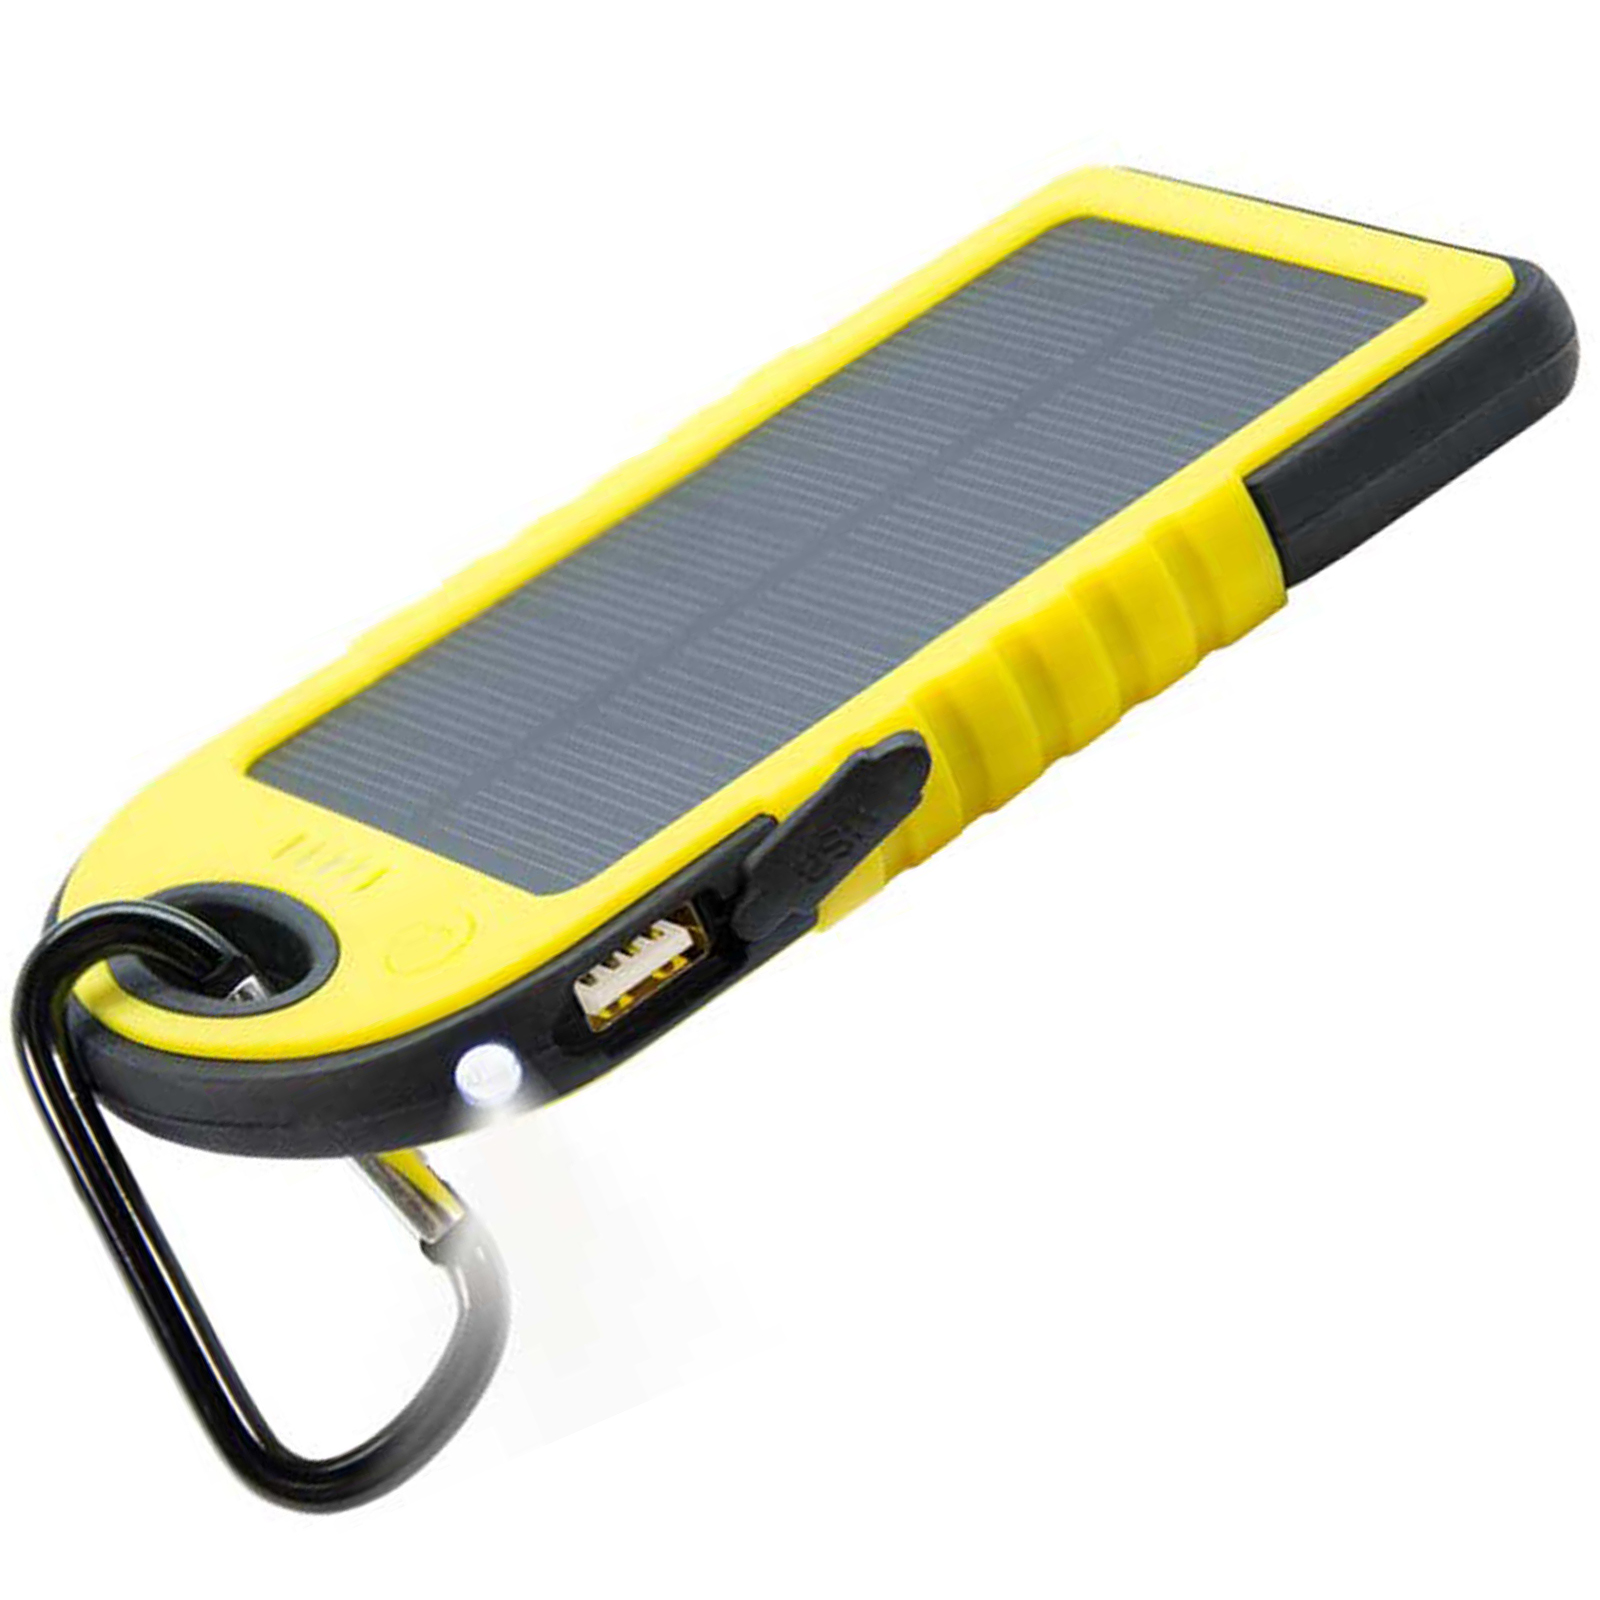 4000 mah RUGGED SOLAR POWER BANK